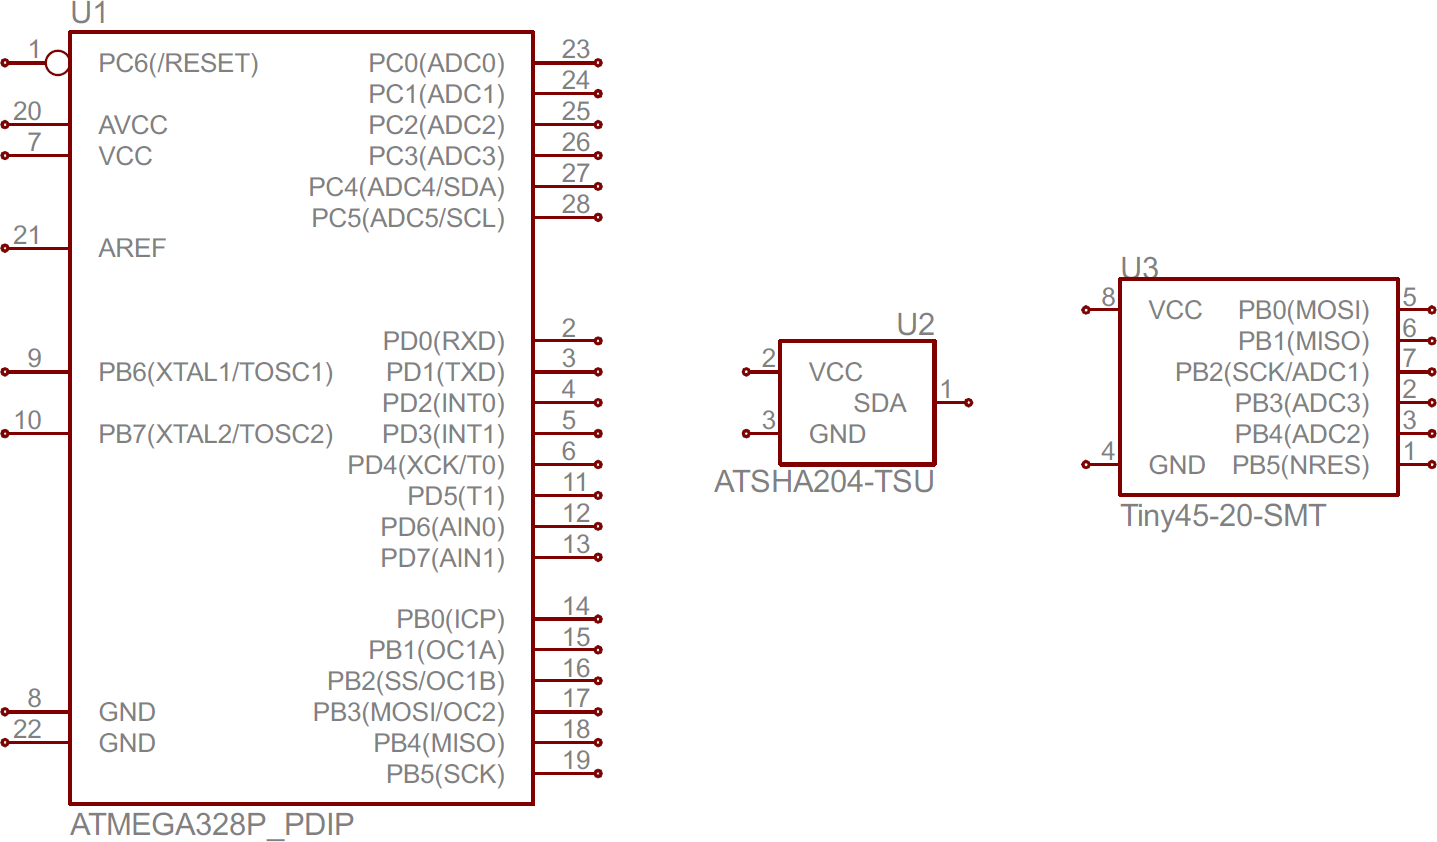 How To Read A Schematic Wiring Wall Outlet Diagram Atmega328 Atsha204 And Attiny45 Ic Symbols